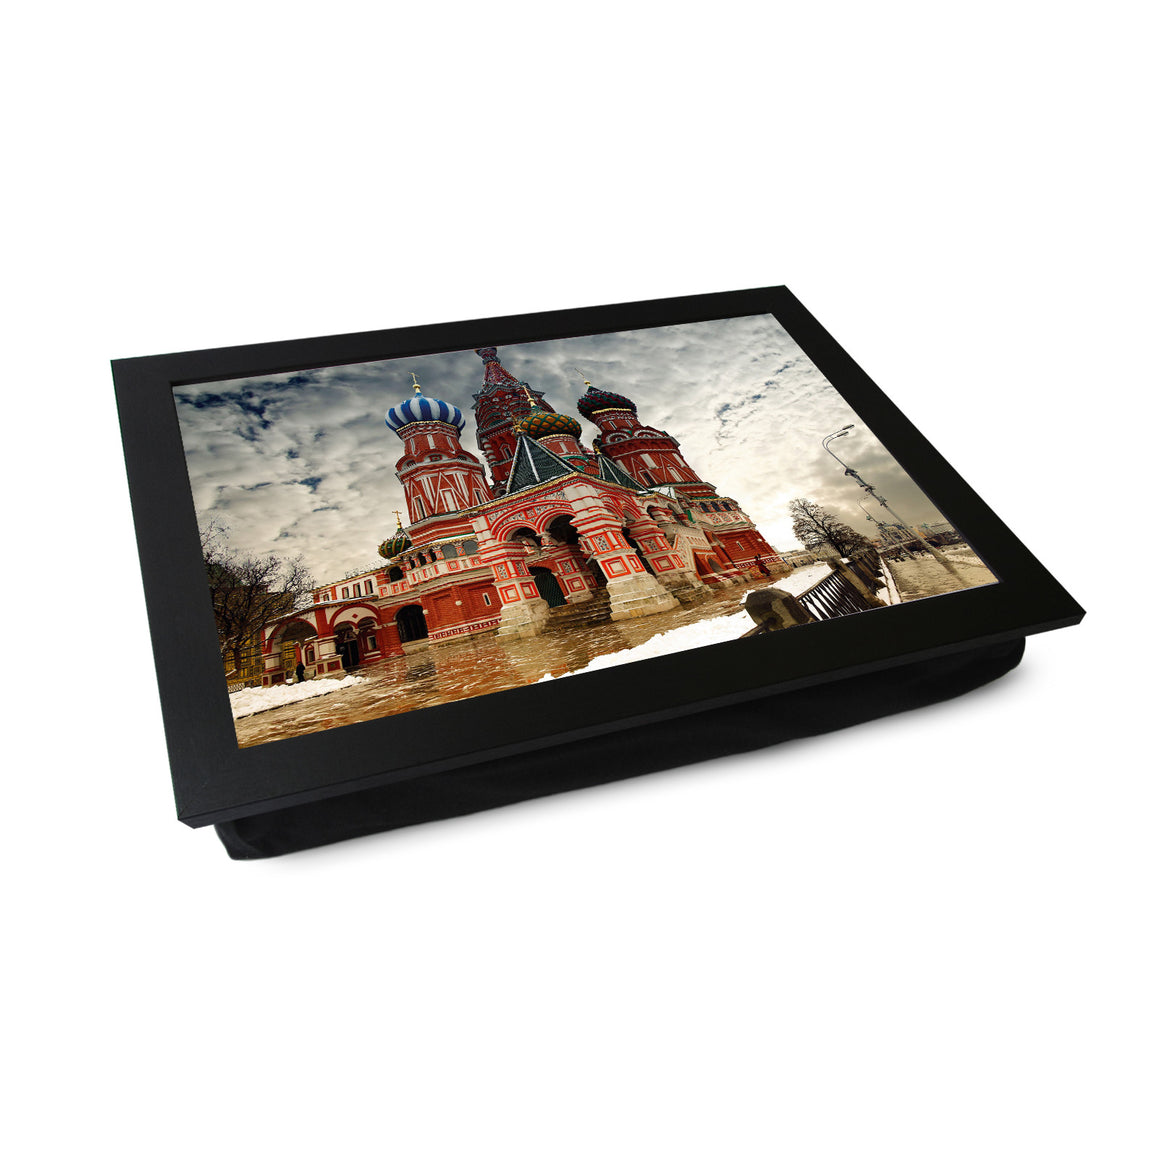 Moscow St Basil's Cathedral Lap Tray - L0111